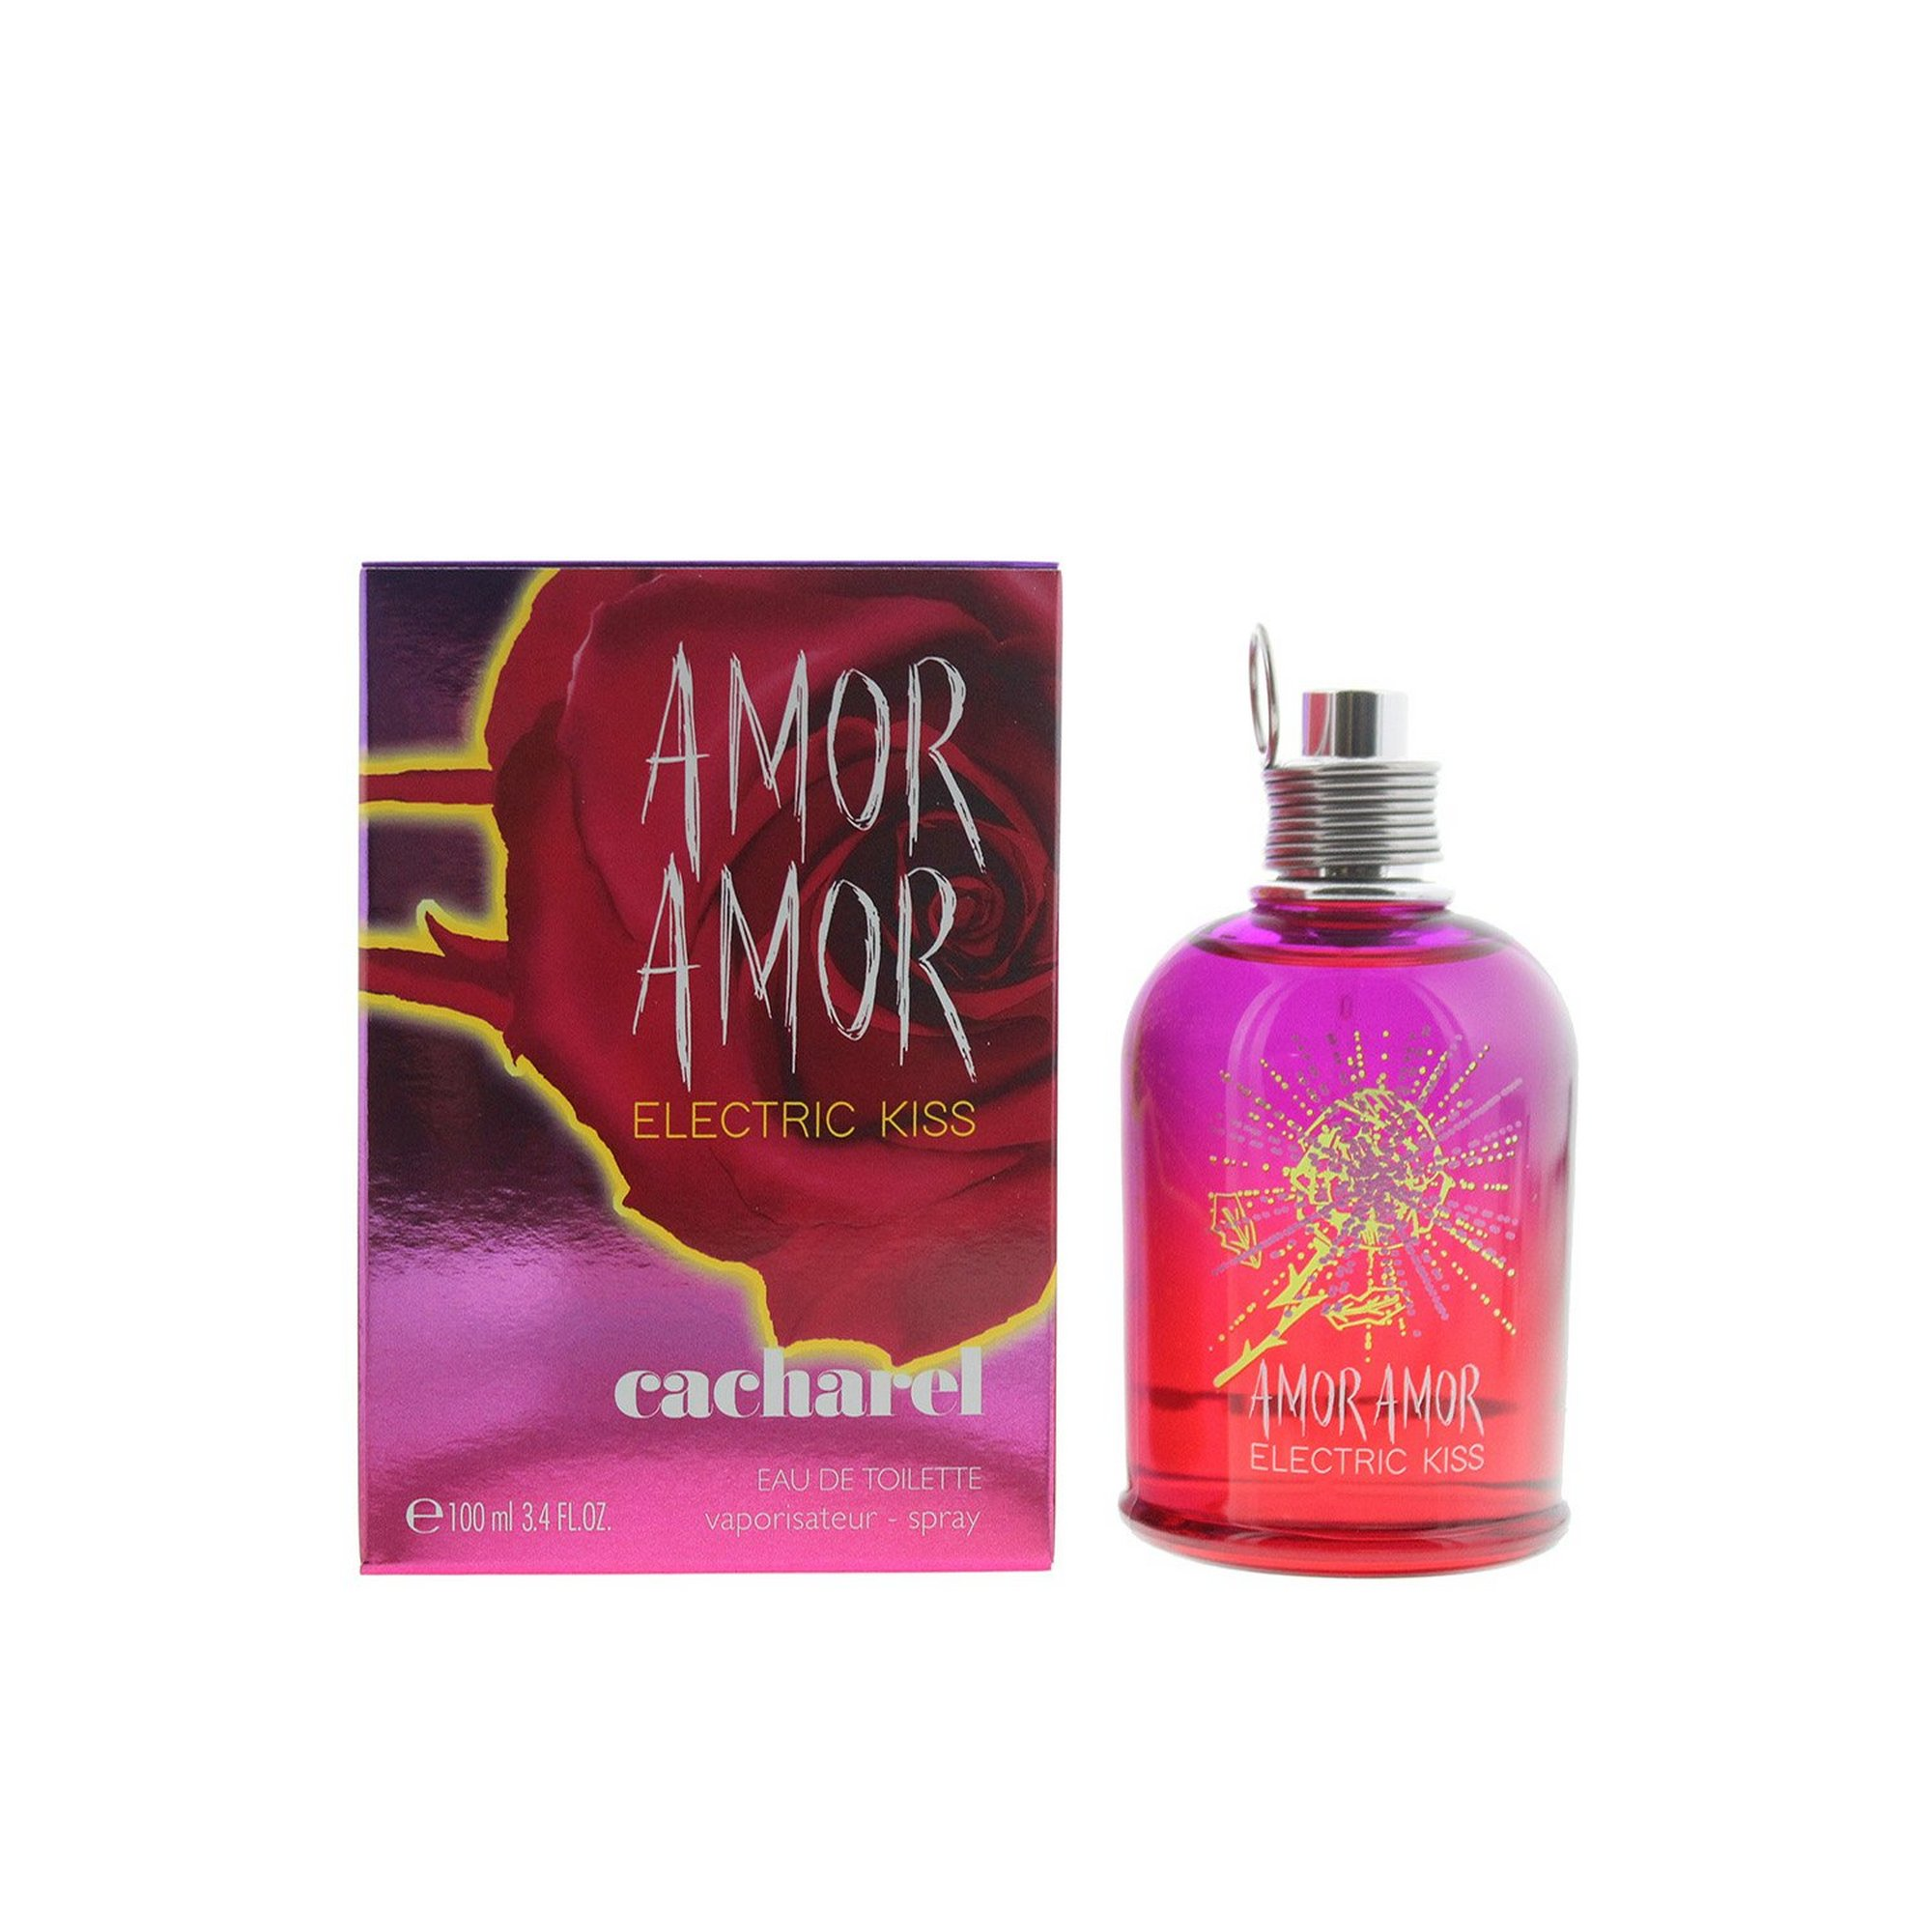 Image of Cacharel Amor Amor Electric Kiss 100ml EDT